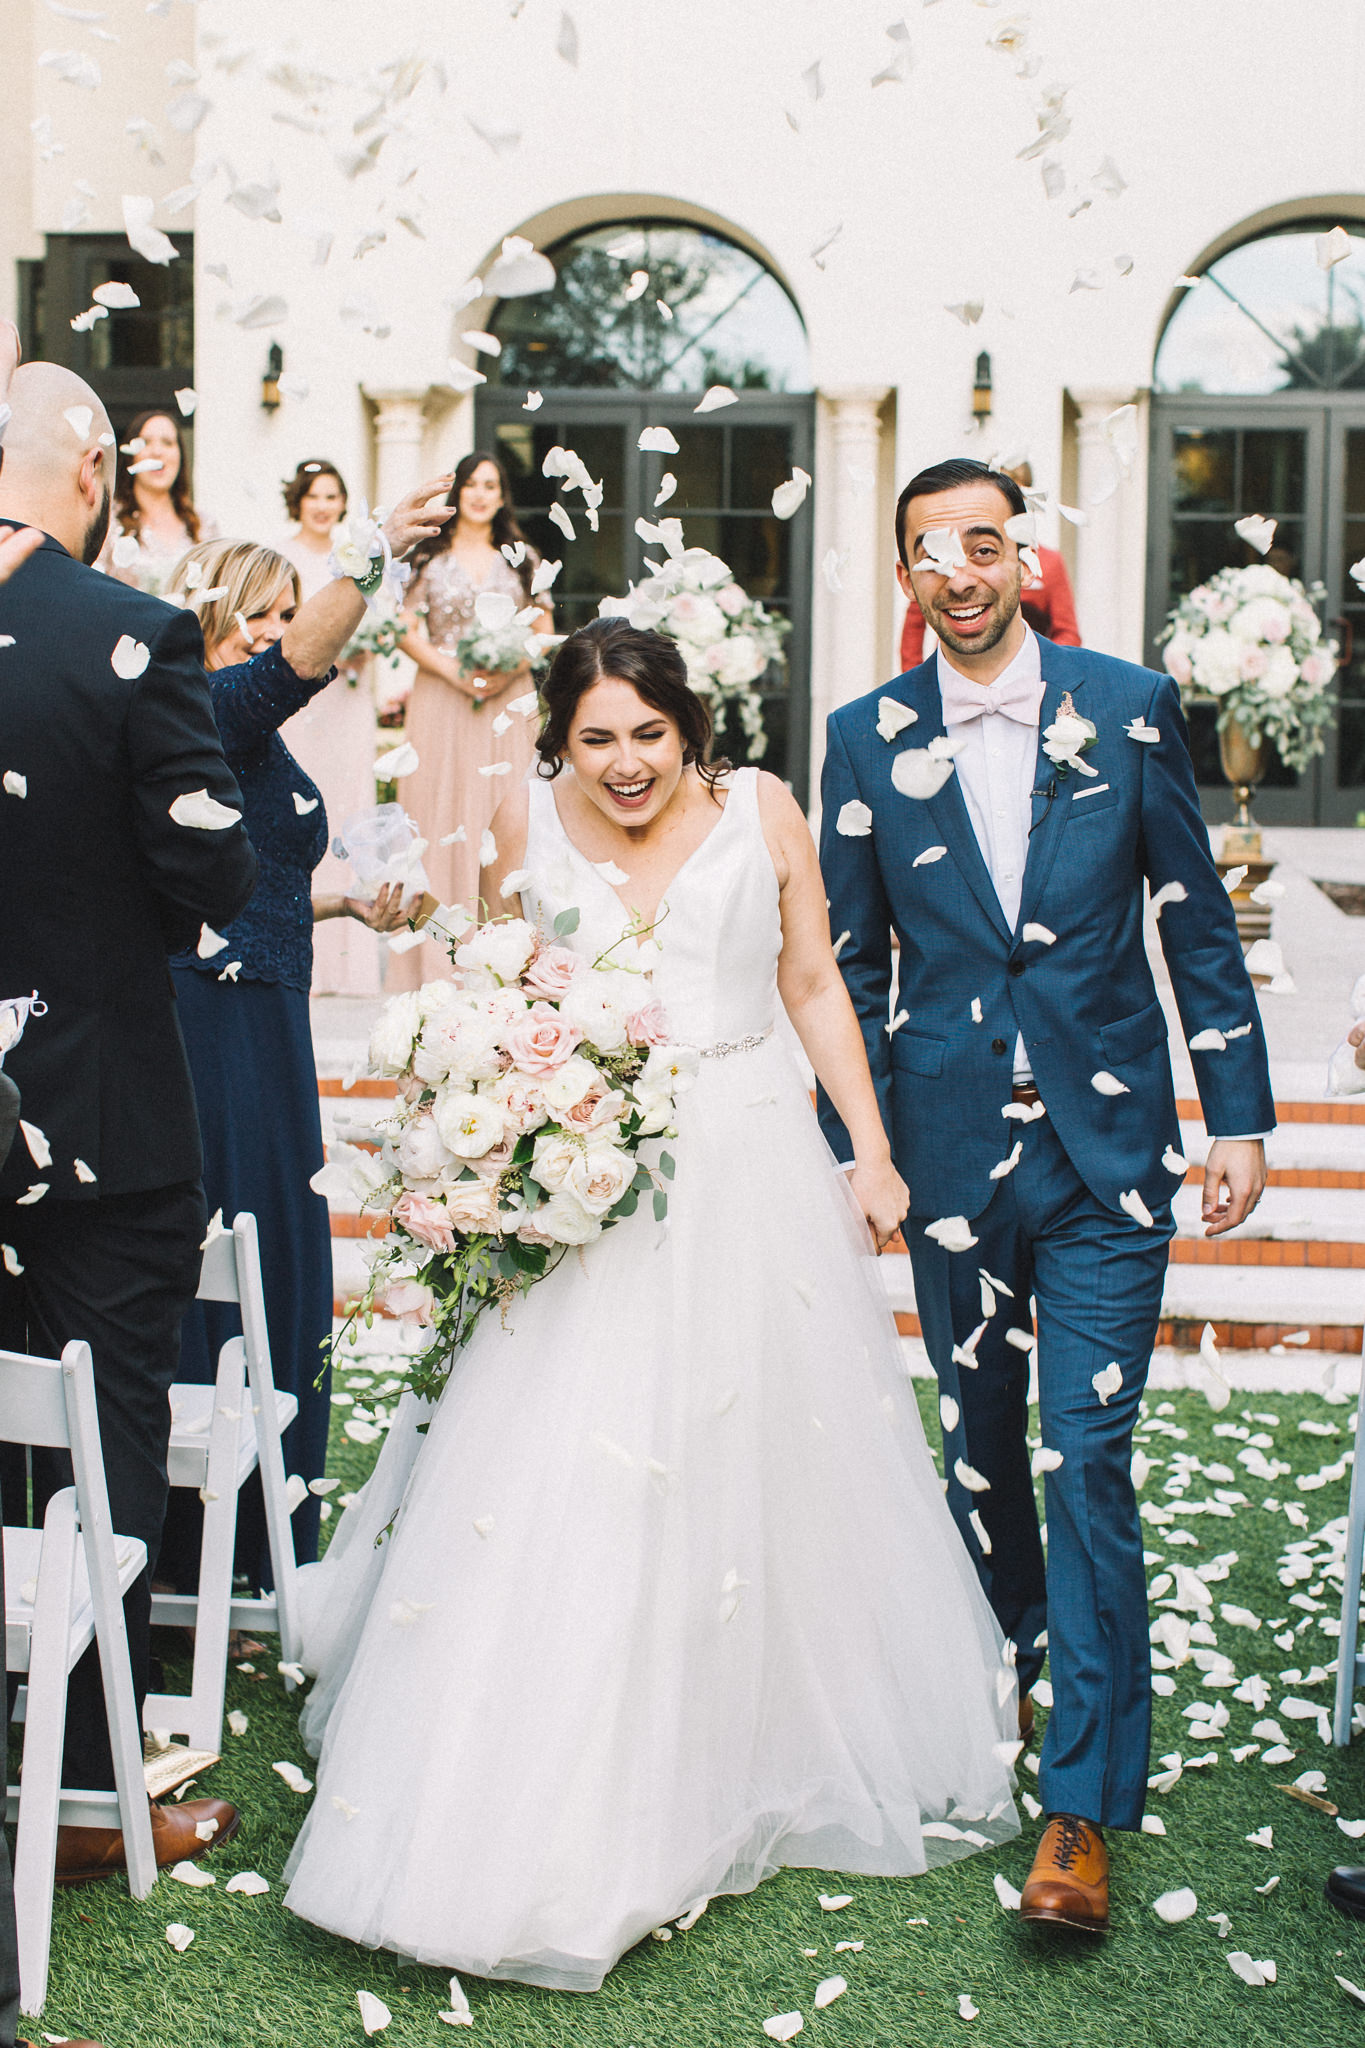 flower petals being thrown after ceremony ceremony exit